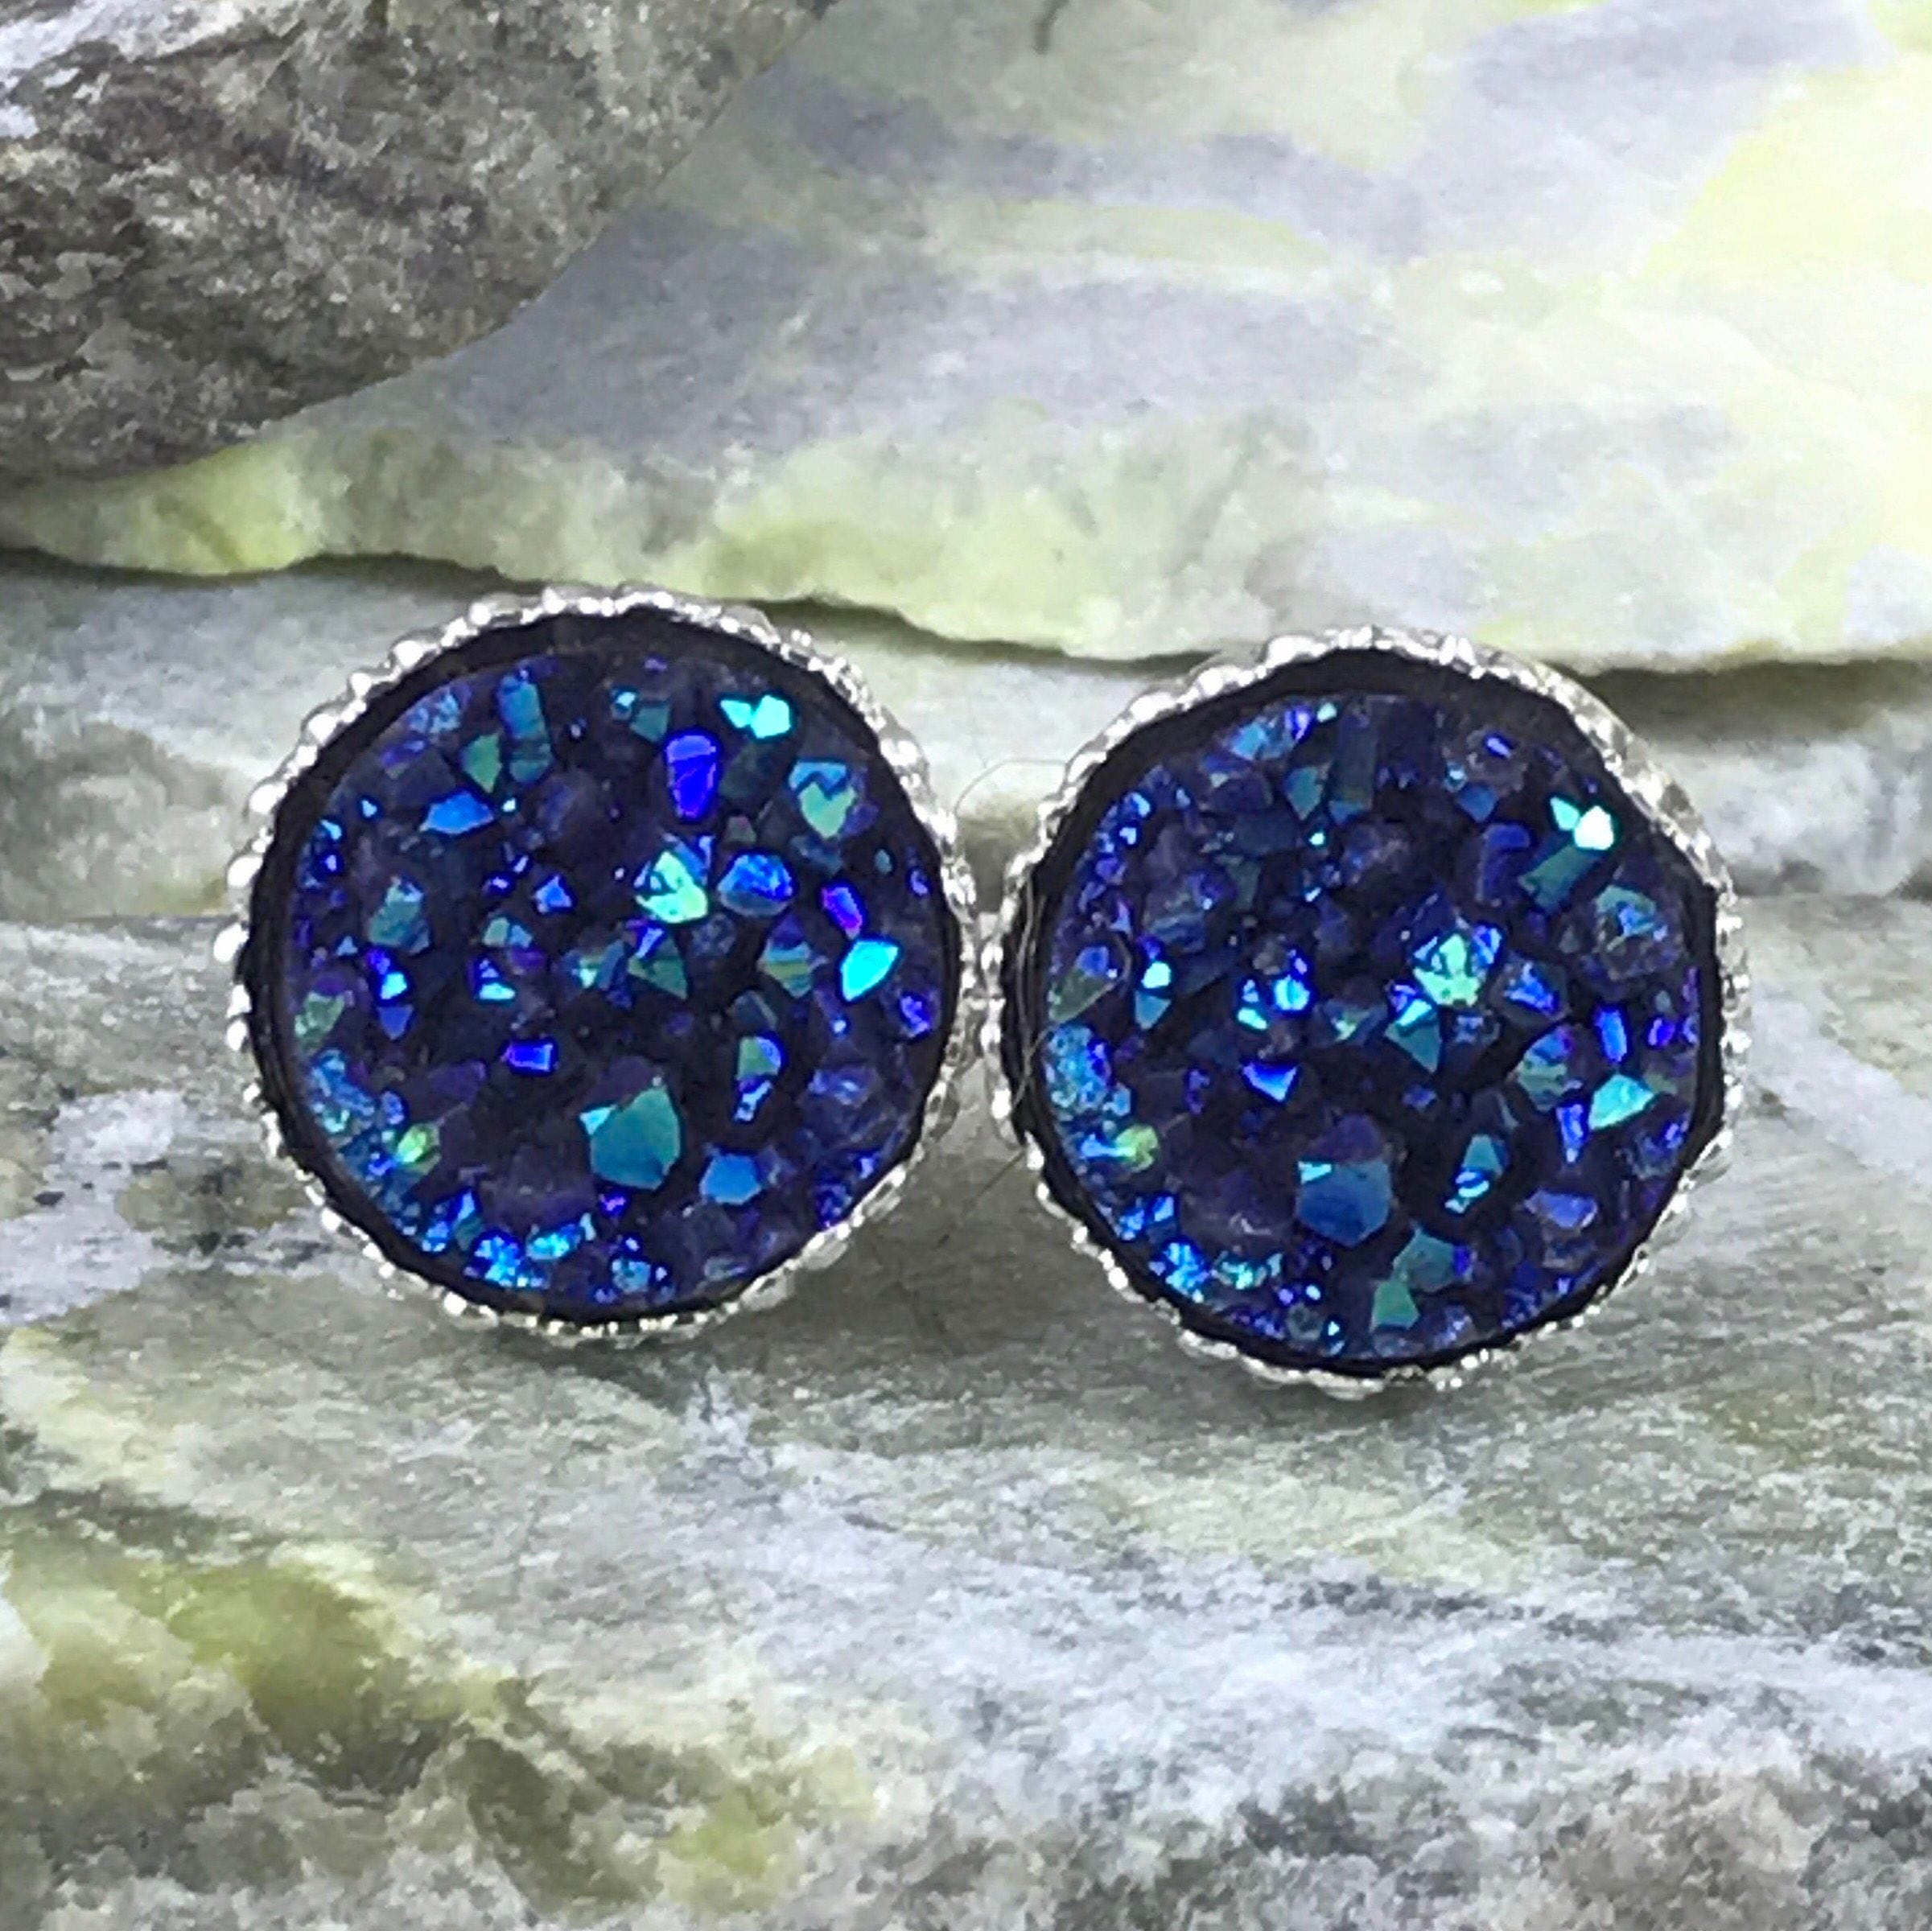 shop blue studs designs dove moonstone gold earrings collections opal sterling nina silver nguyen oxidized black stud yellow